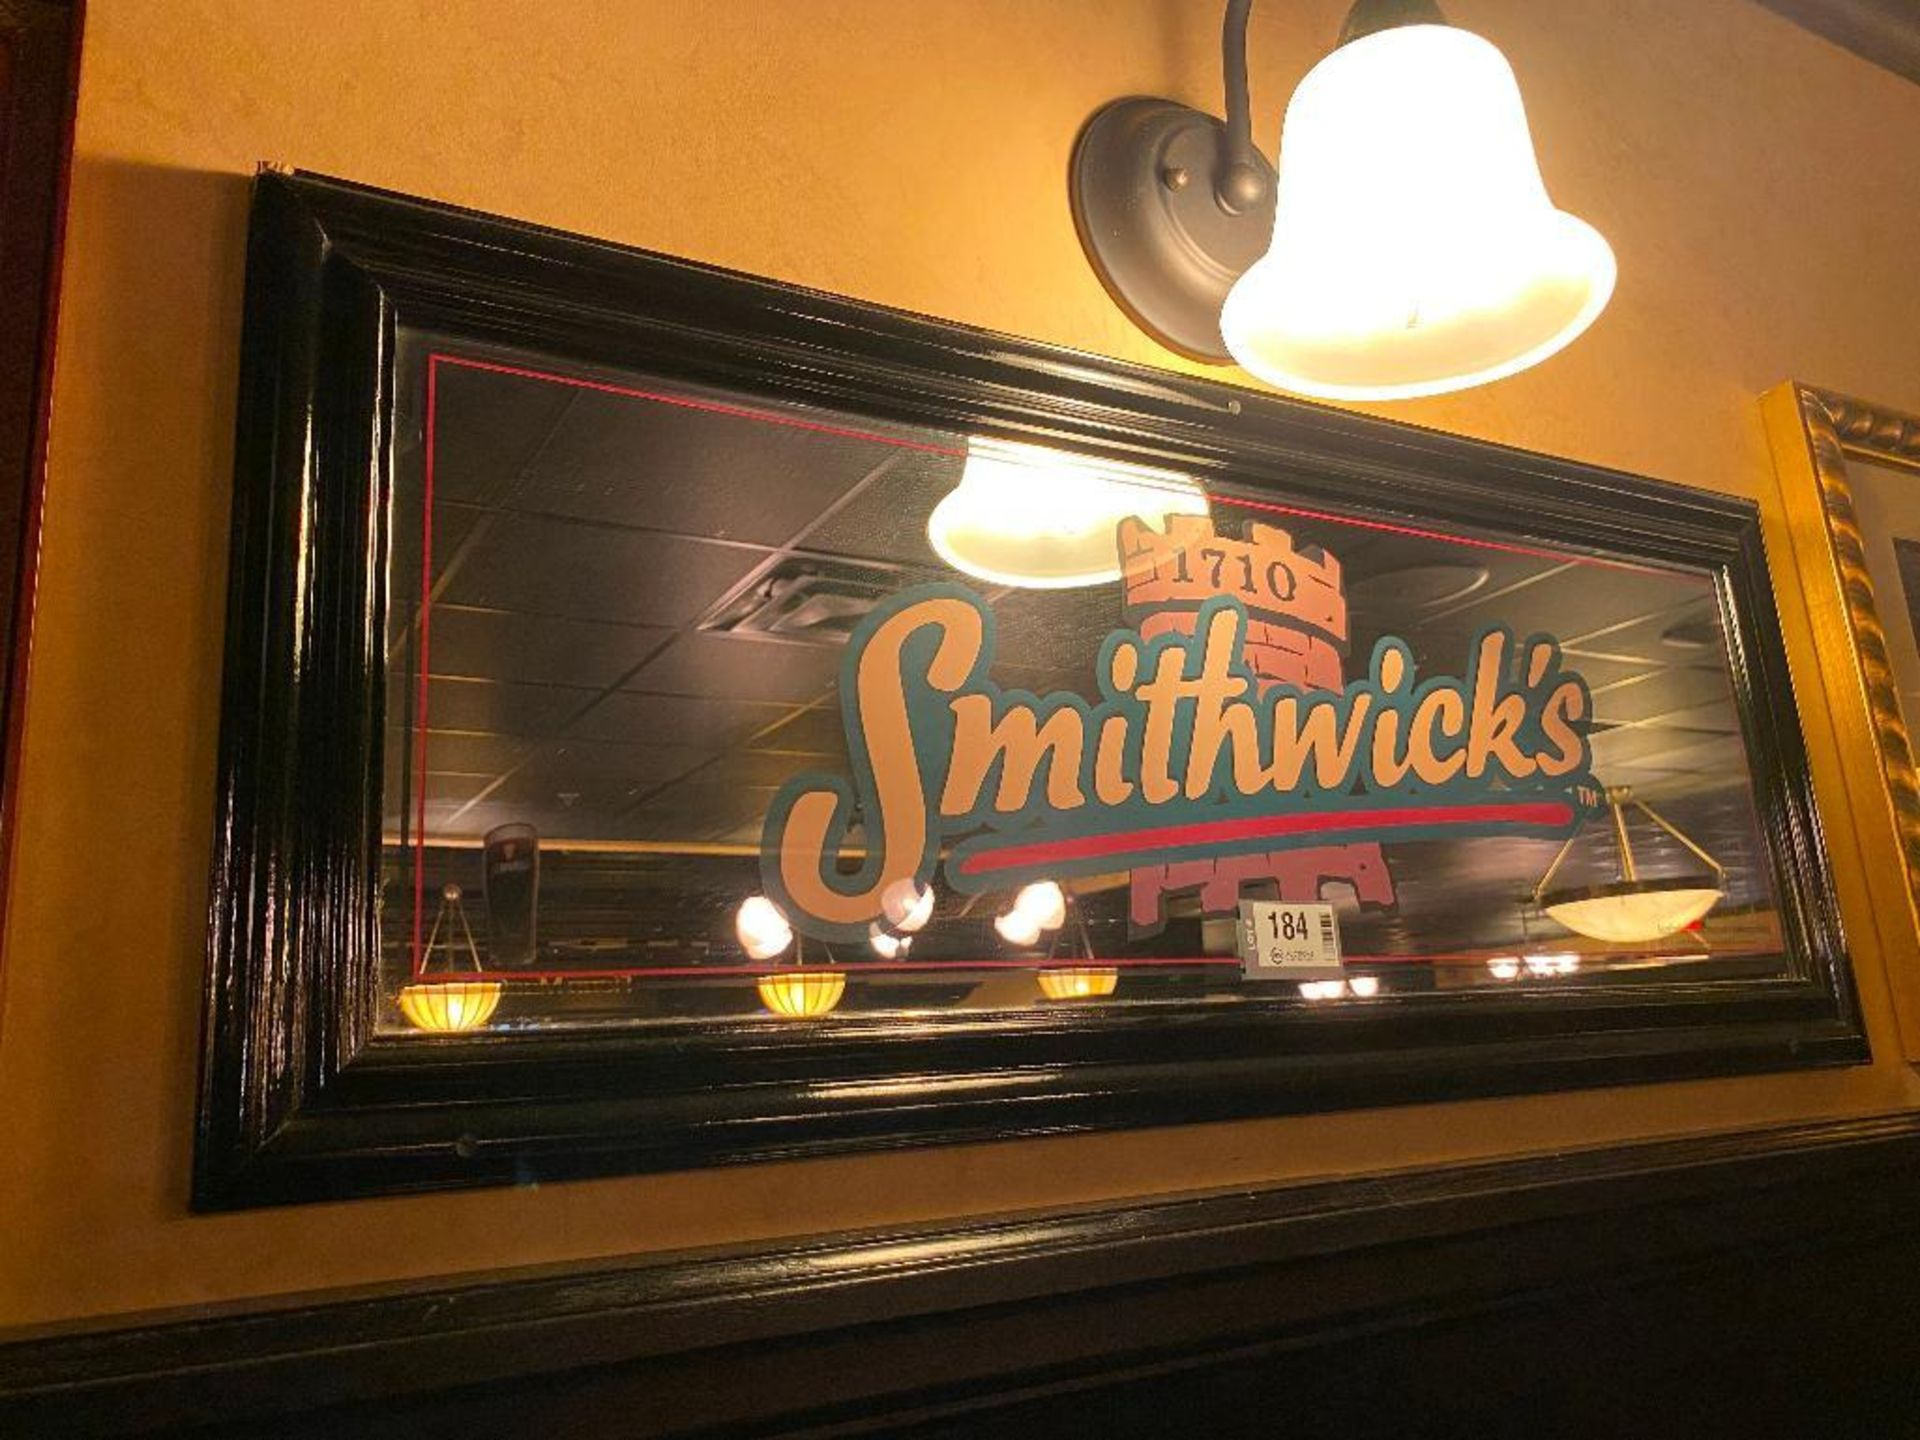 LOT OF (2) FRAMED MEMORABILIA PHOTOS & (1) SMITHWICK'S MIRROR - NOTE: REQUIRES REMOVAL FROM WALL, PL - Image 3 of 4